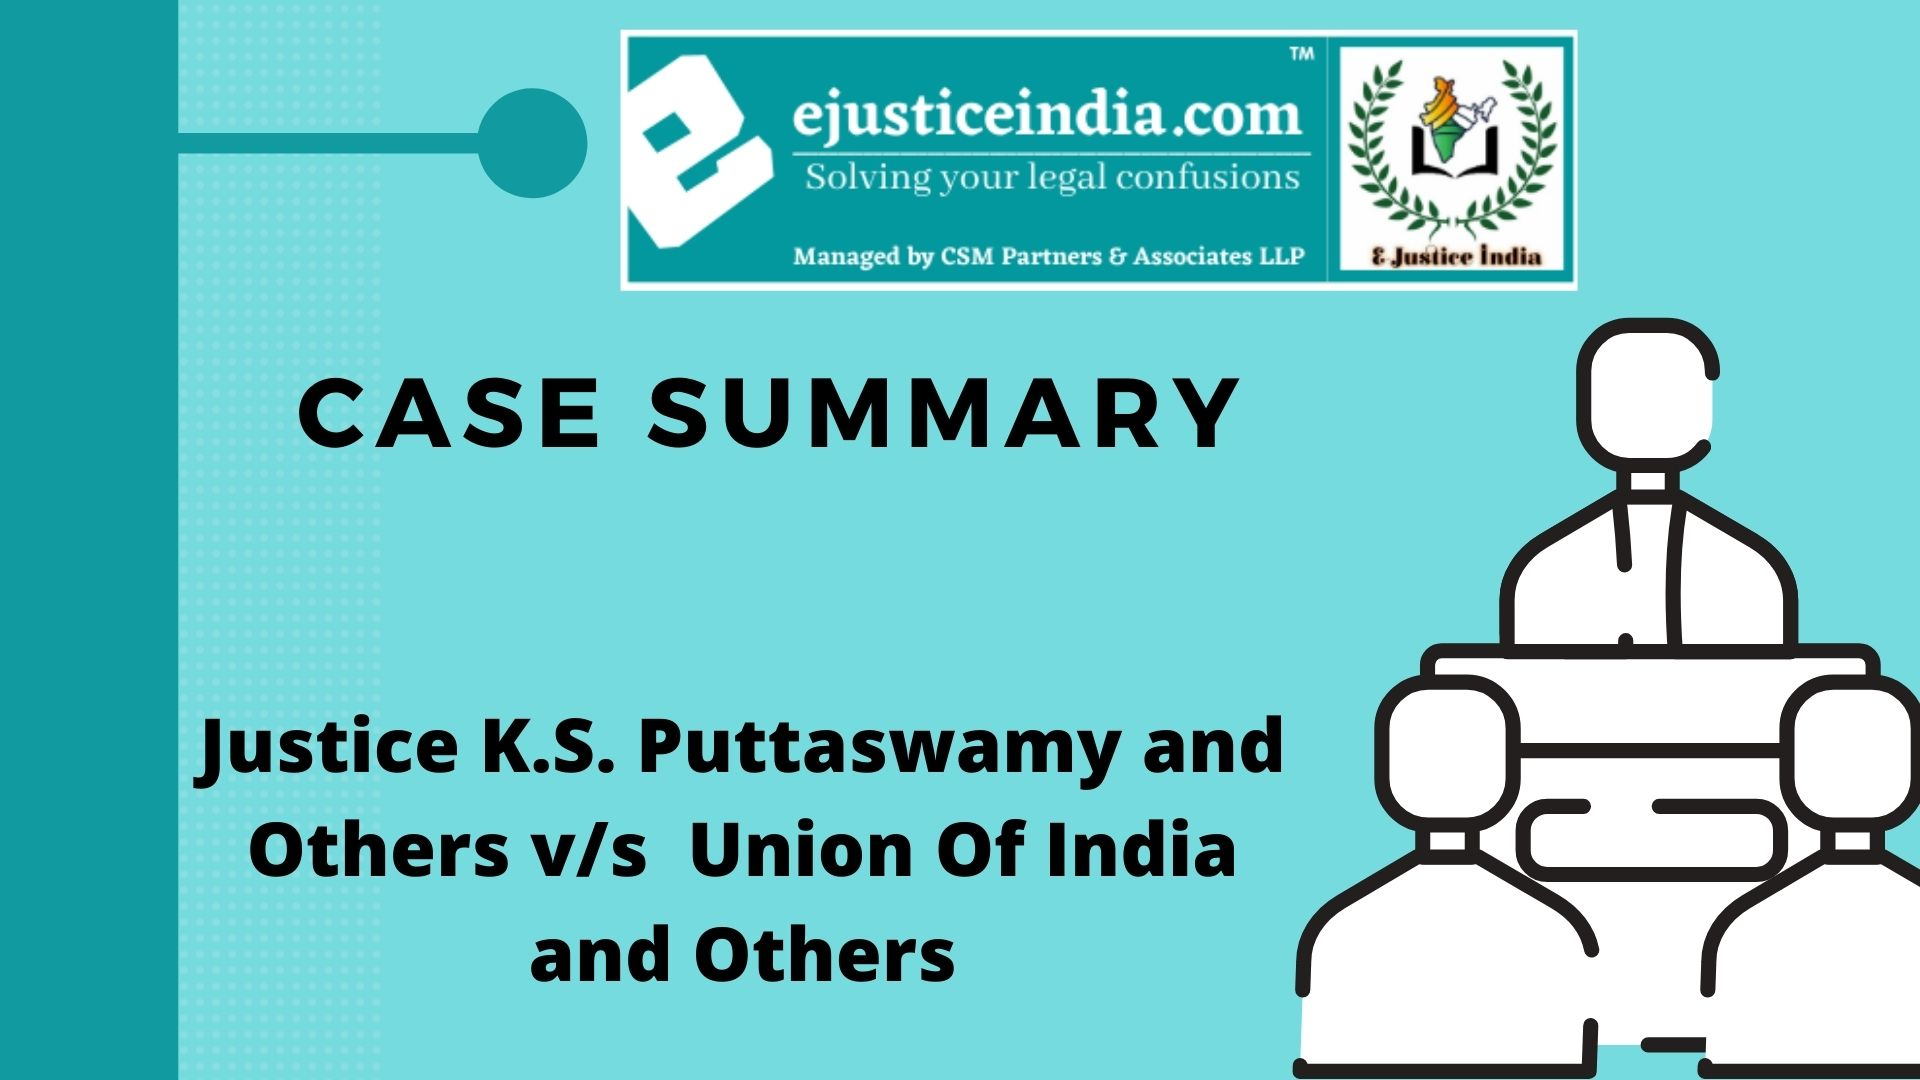 Justice K.S. Puttaswamy and Others vs Union Of India and Others